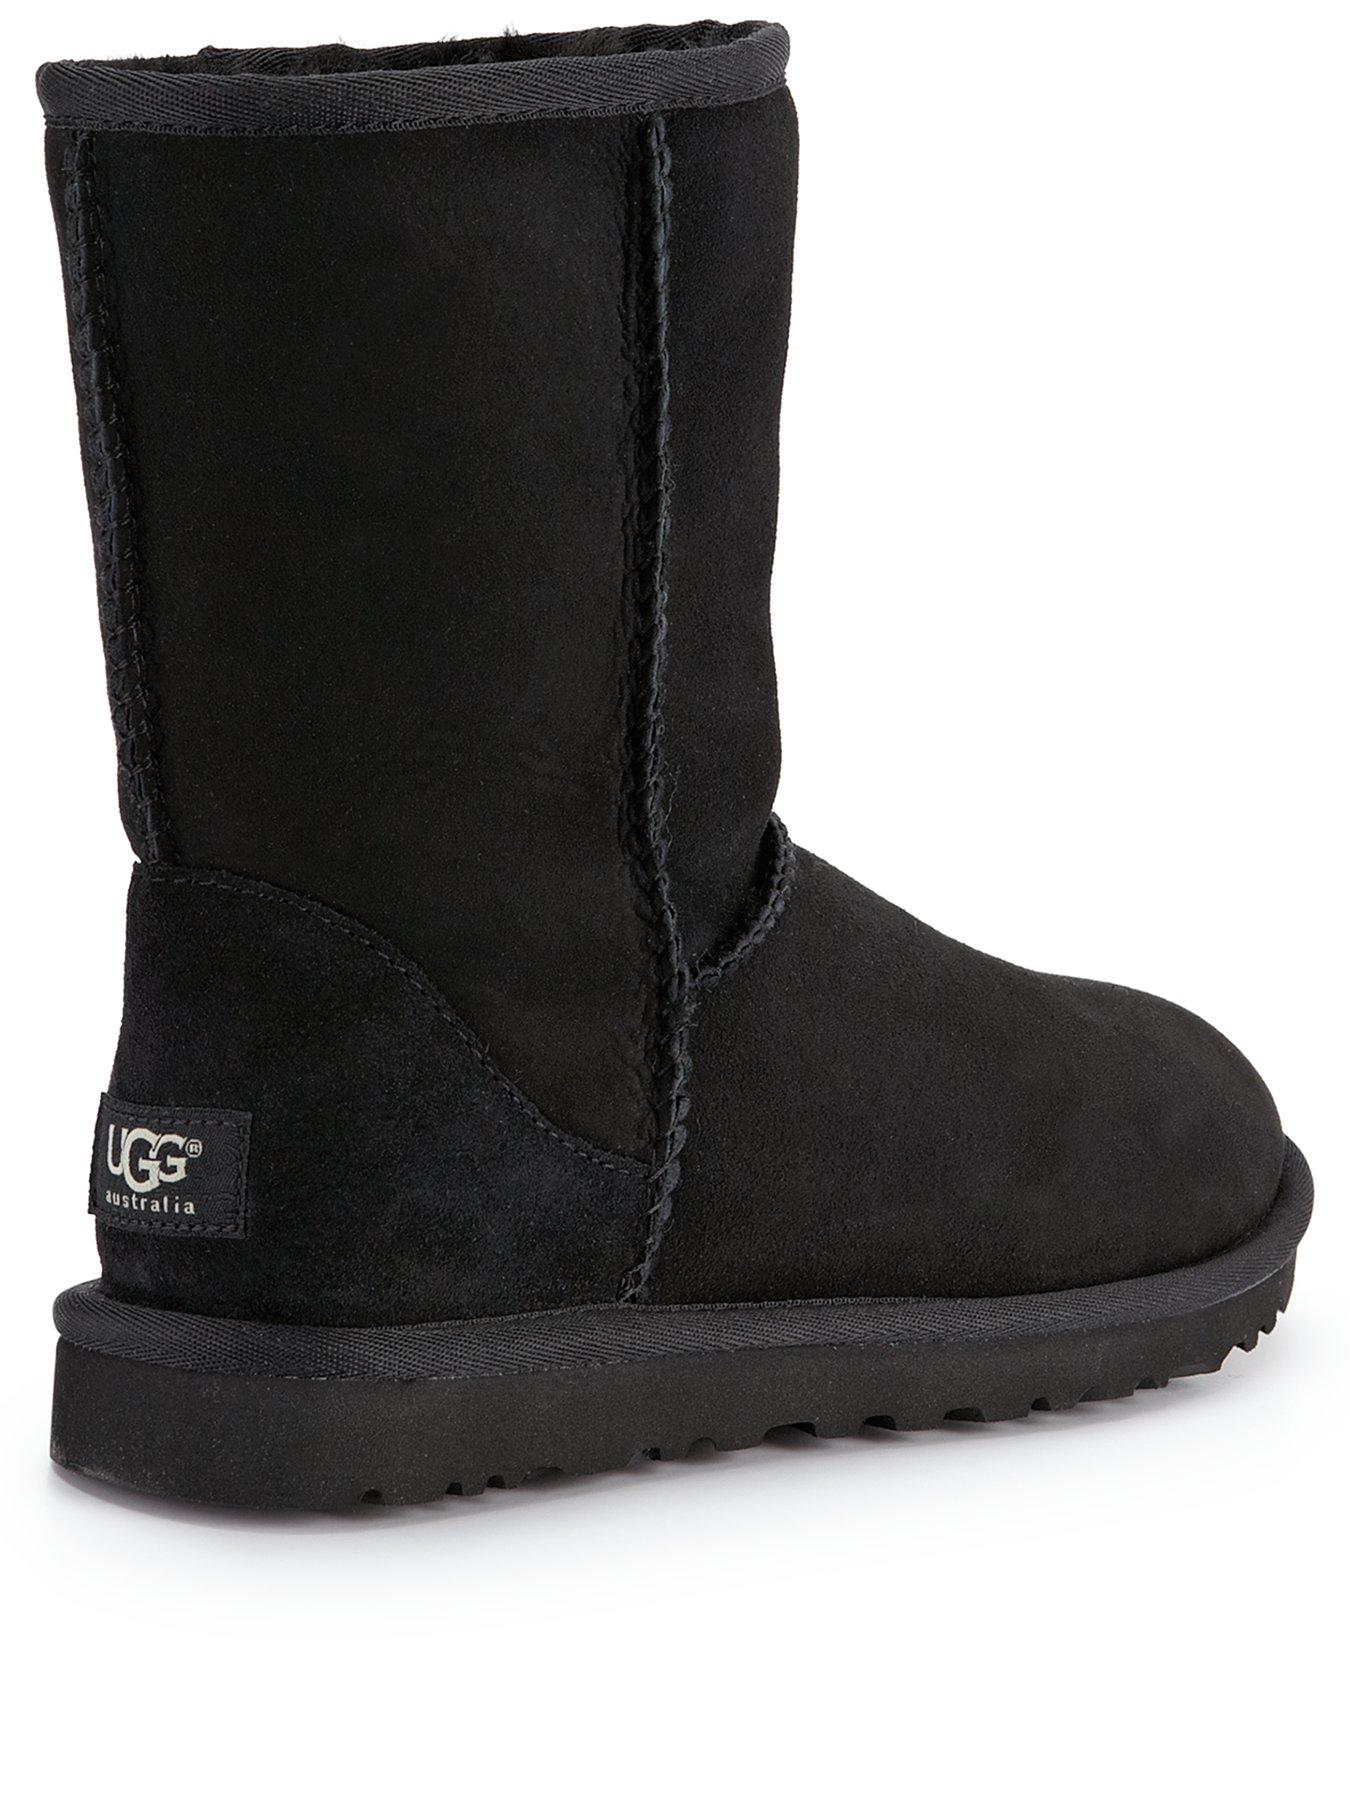 new black ugg boots